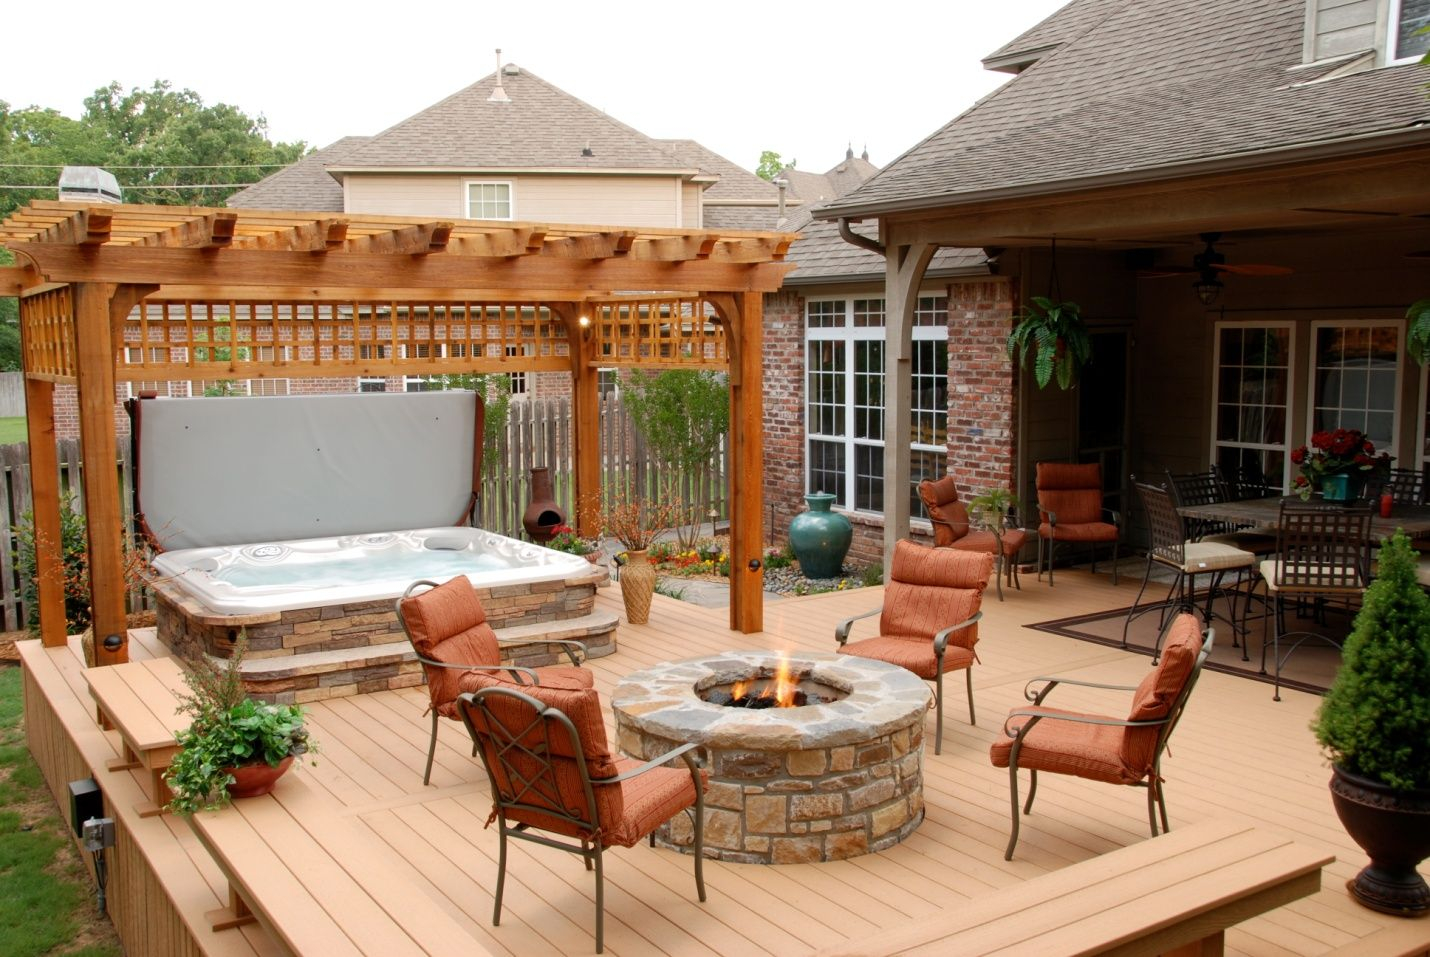 Bhotb Btubb Install With Stone Patio Deck Porch In Sizing 1430 X 957